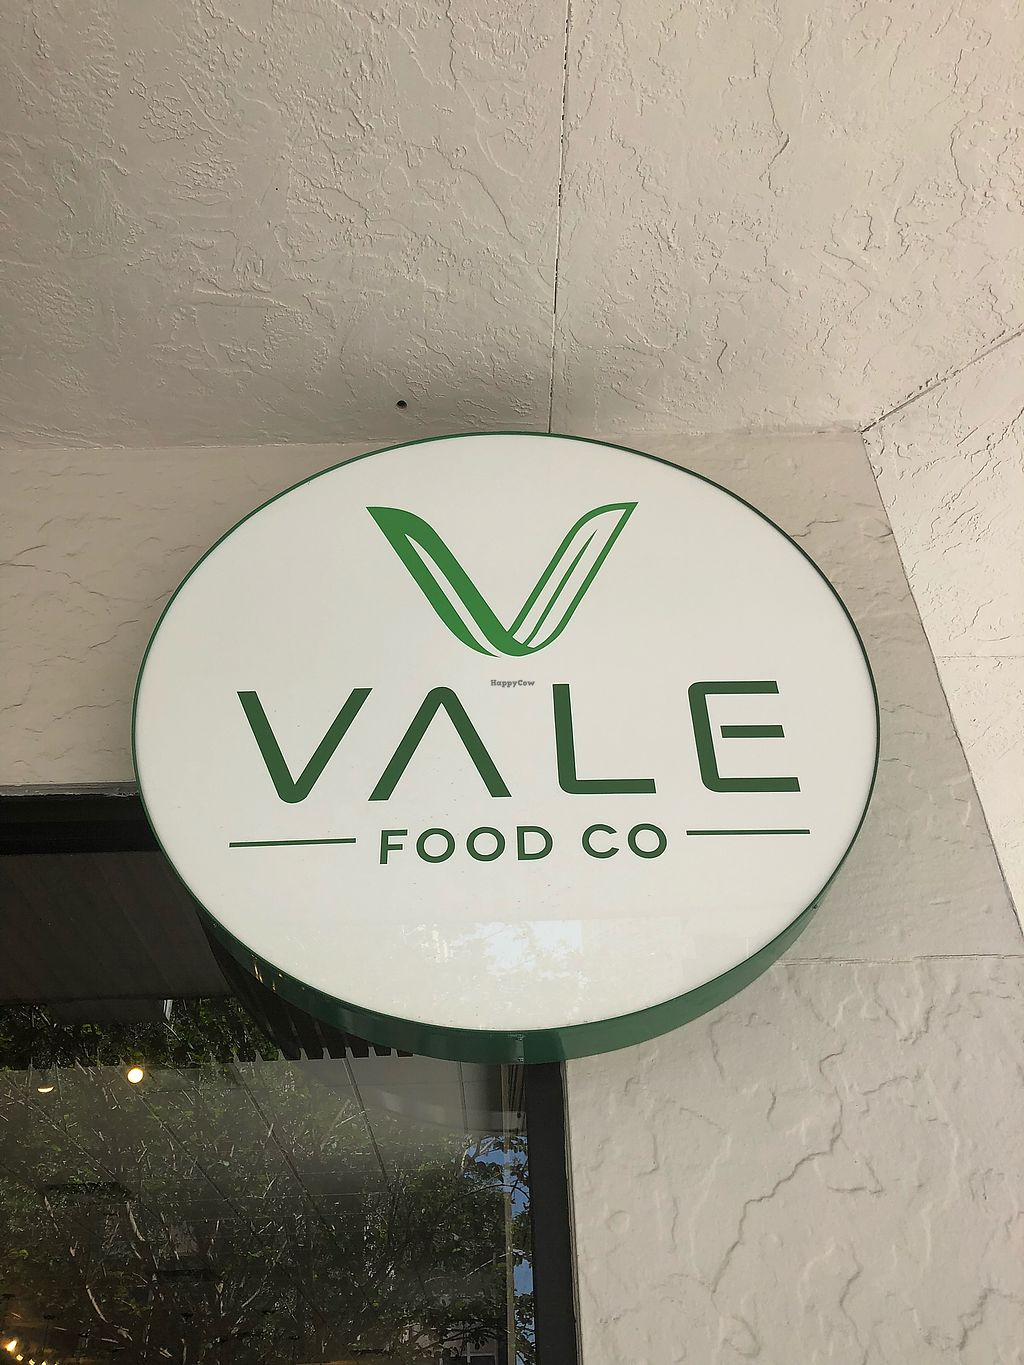 """Photo of Vale Food Co.  by <a href=""""/members/profile/MeganItchkawich"""">MeganItchkawich</a> <br/>Tampa <br/> April 2, 2018  - <a href='/contact/abuse/image/114324/379862'>Report</a>"""